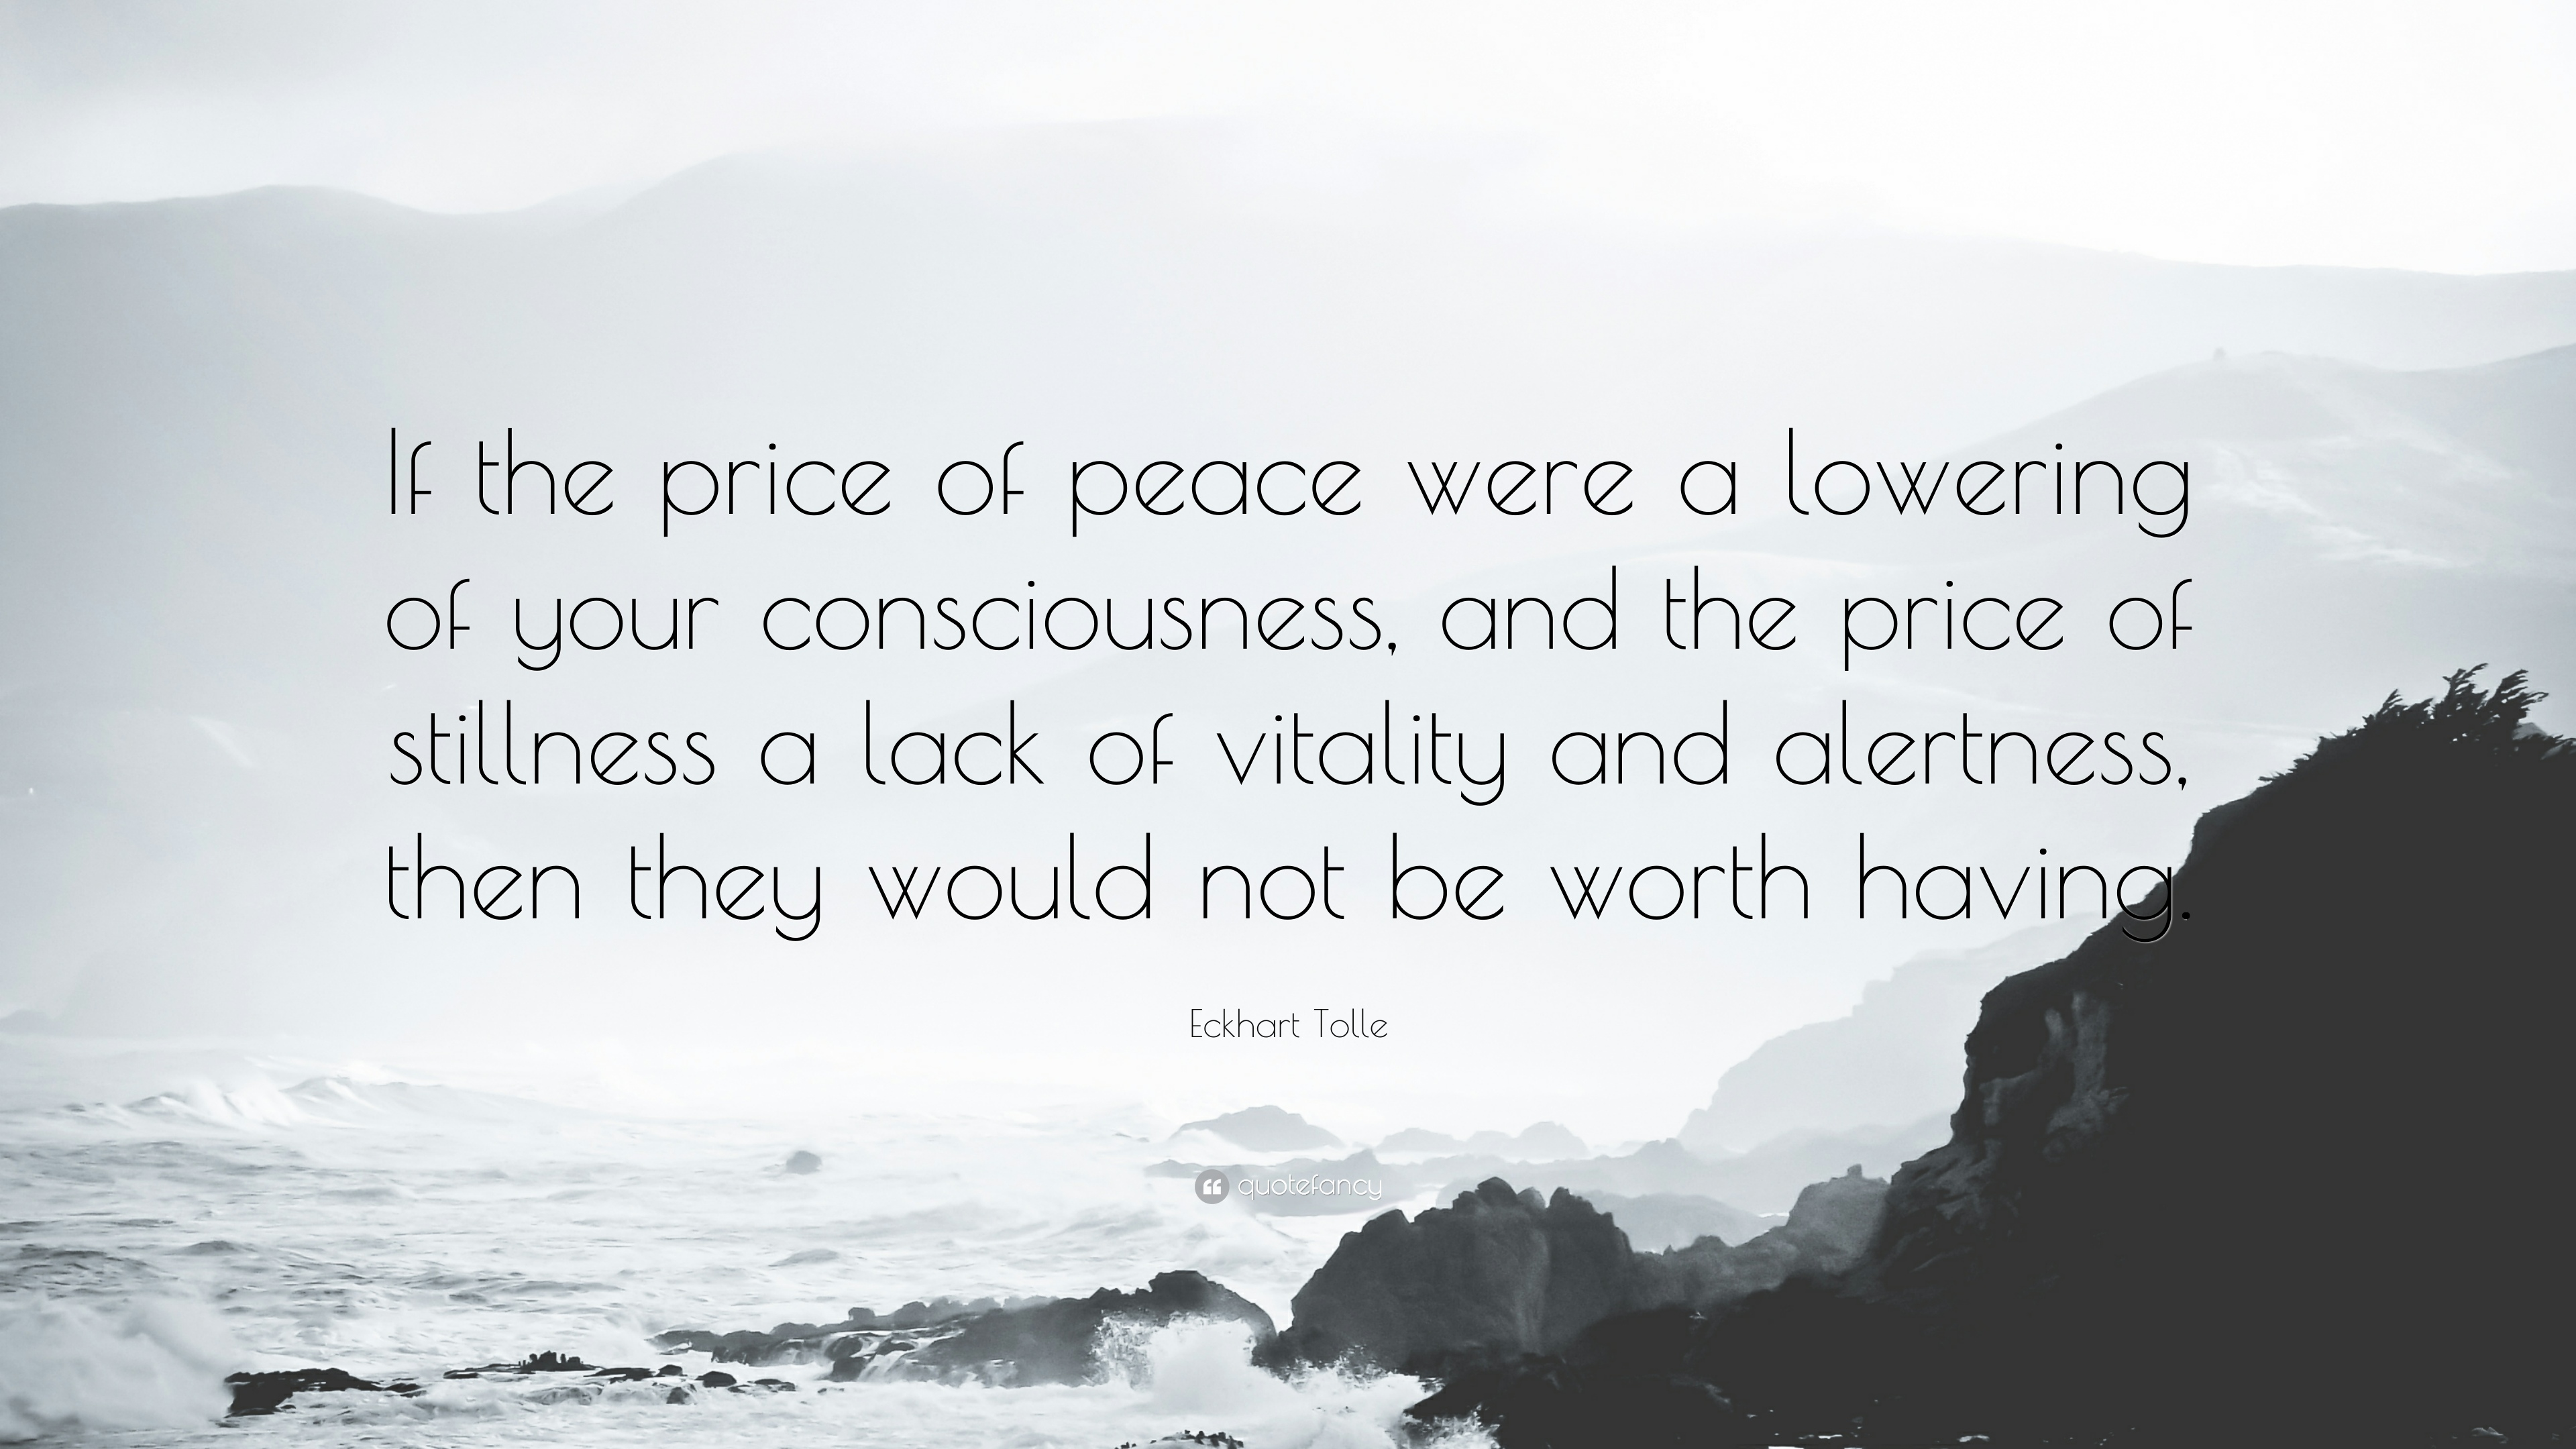 What price would you pay for peace?